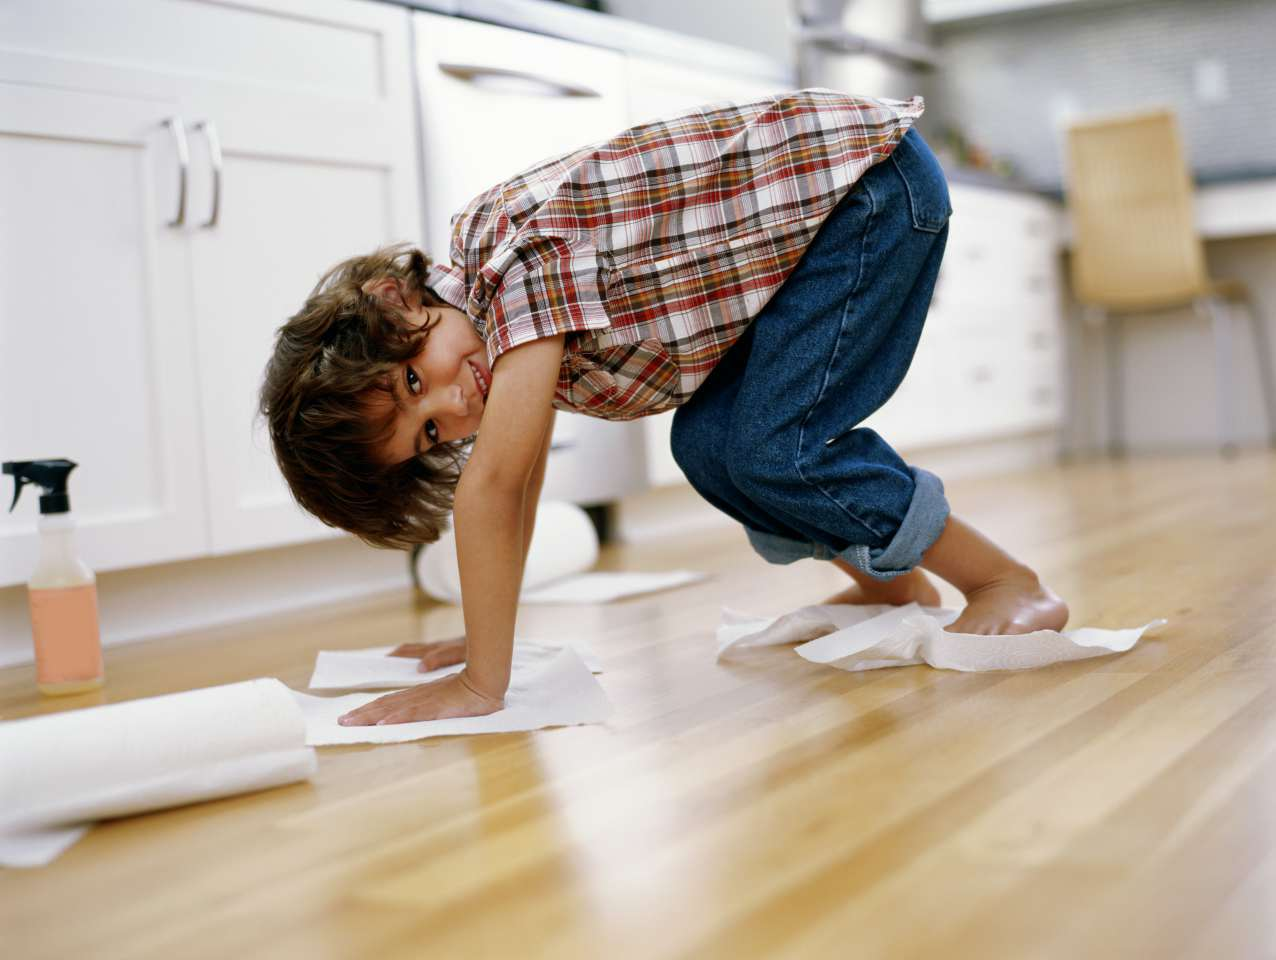 Apartment Cleaning tips by Ann Arbor apartments